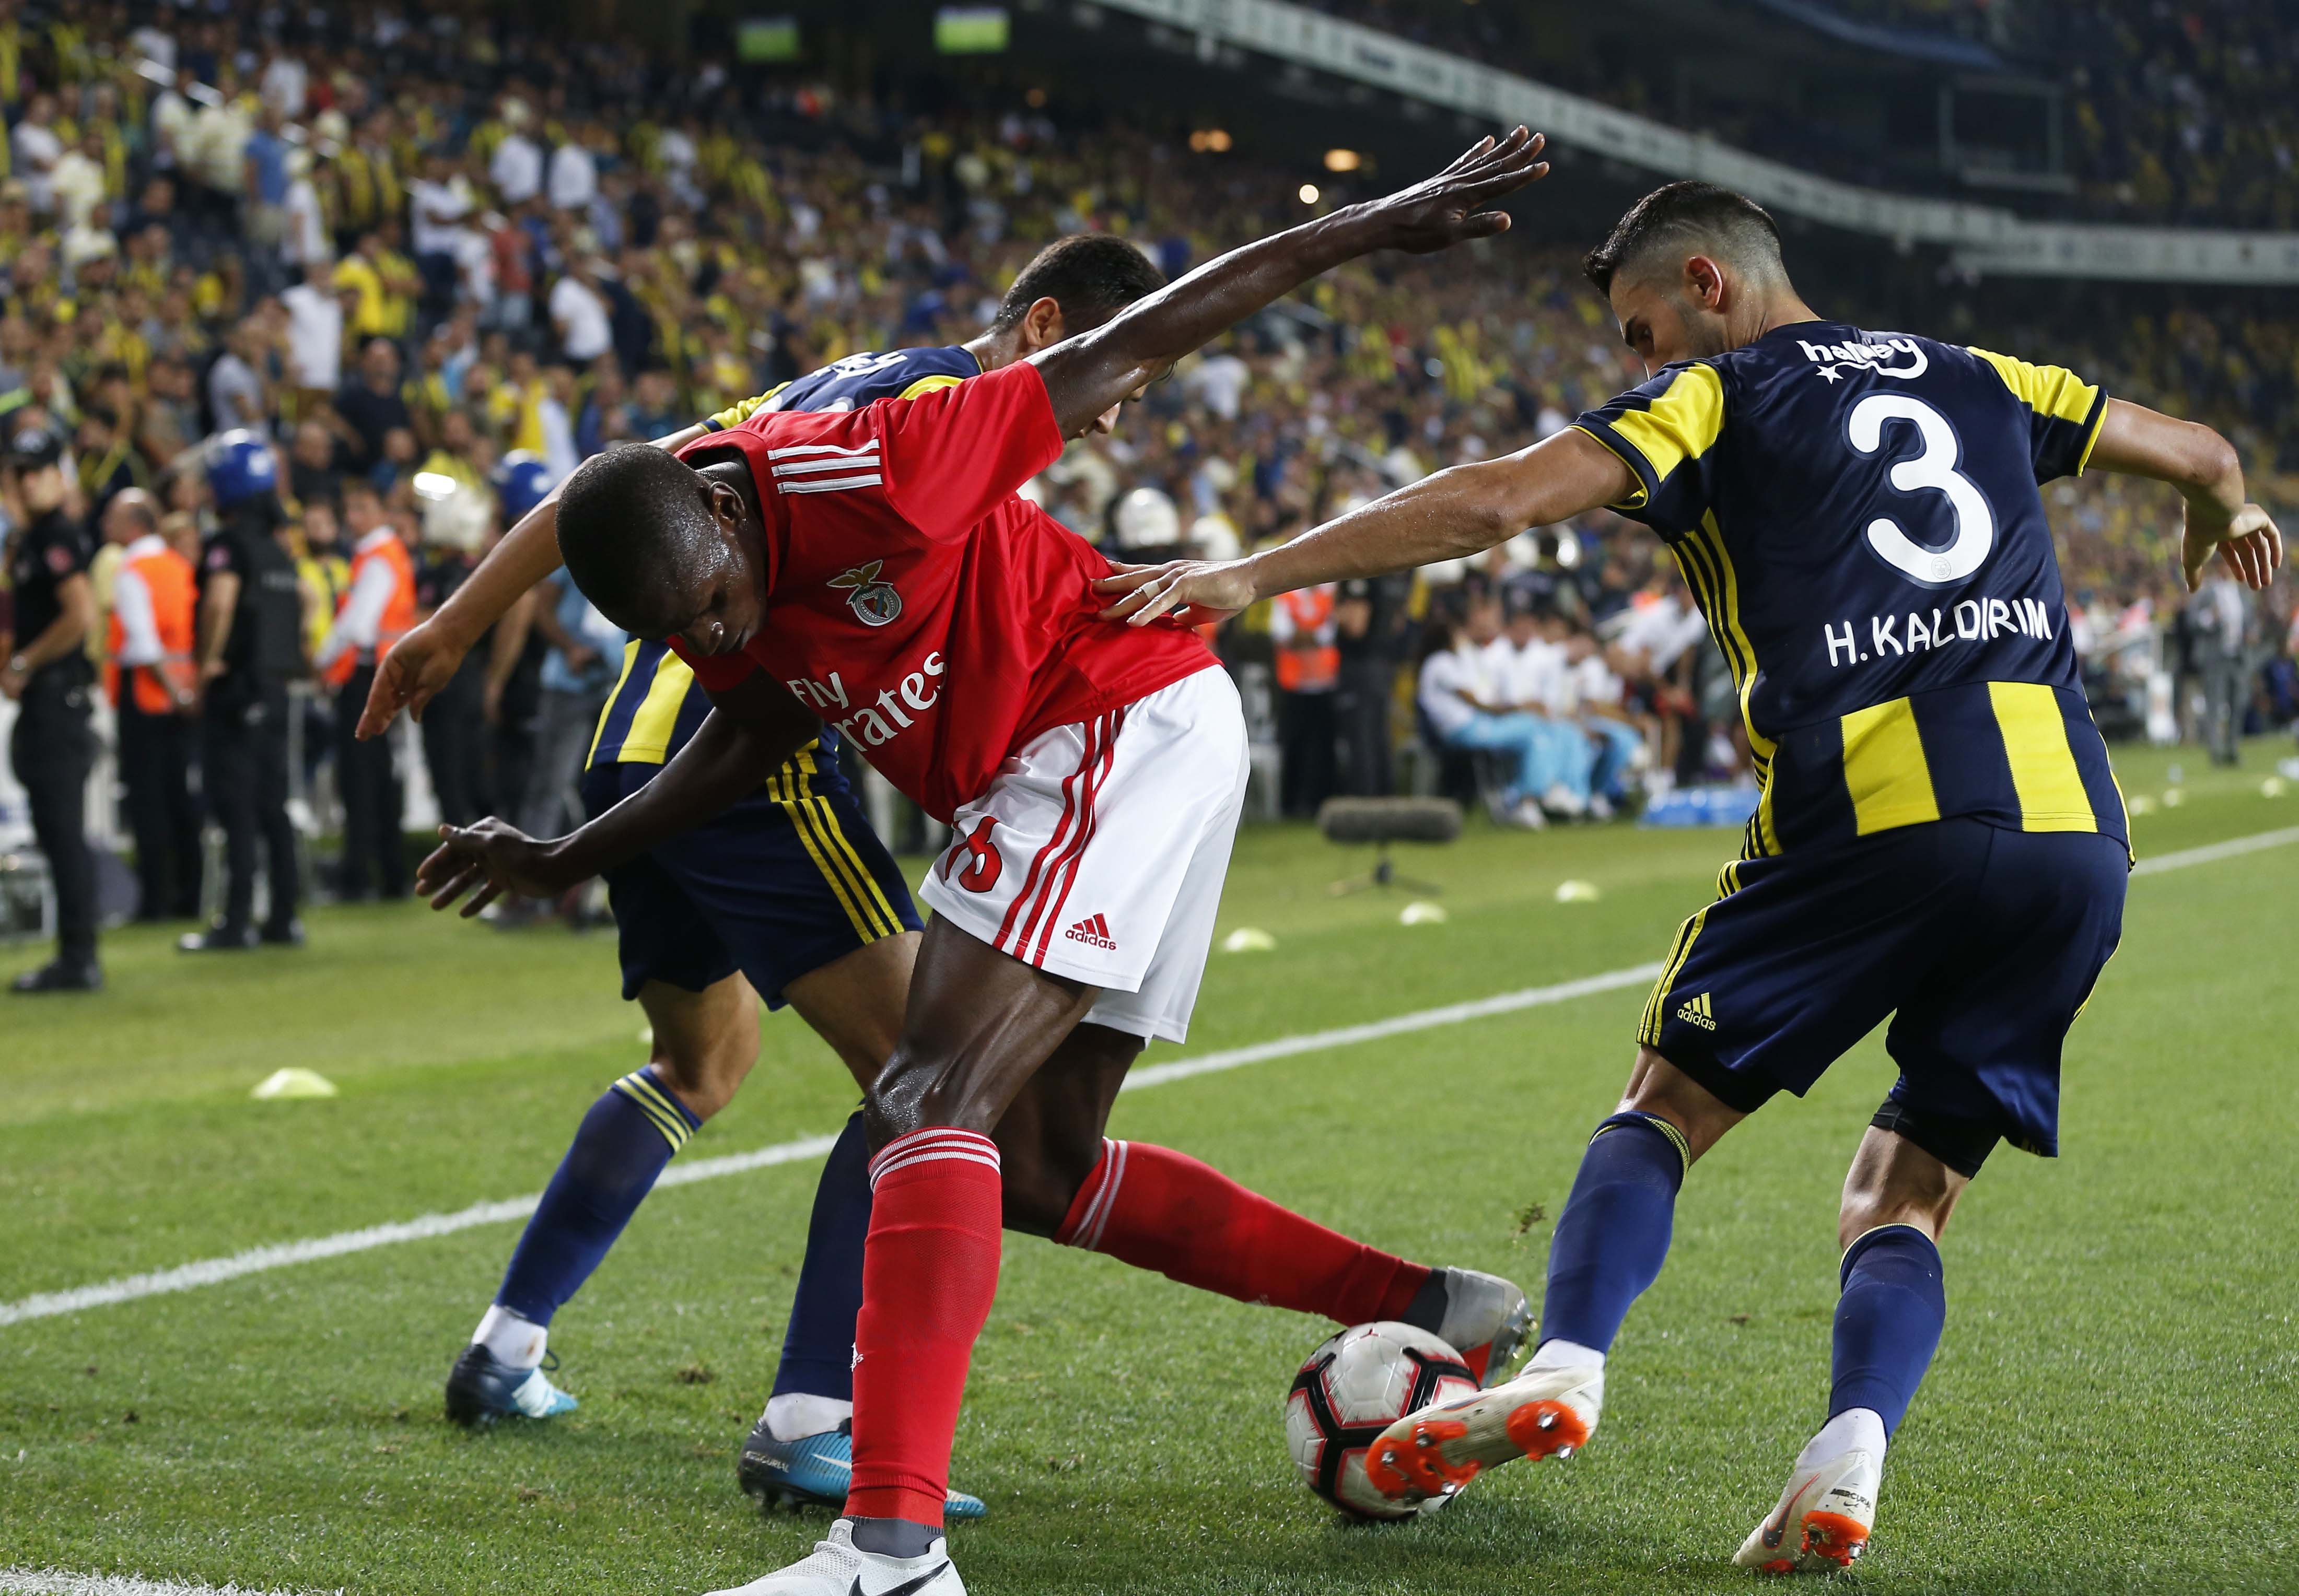 Benfica's Alfa Semedo (left) fights for the ball with Fenerbahce's Baris Alici and Hasan Ali Kaldirim (right) during the Champions League third qualifying round, second leg, soccer match between Fenerbahce and Benfica at the Sukru Saracoglu stadium in Istanbul on Tuesday.